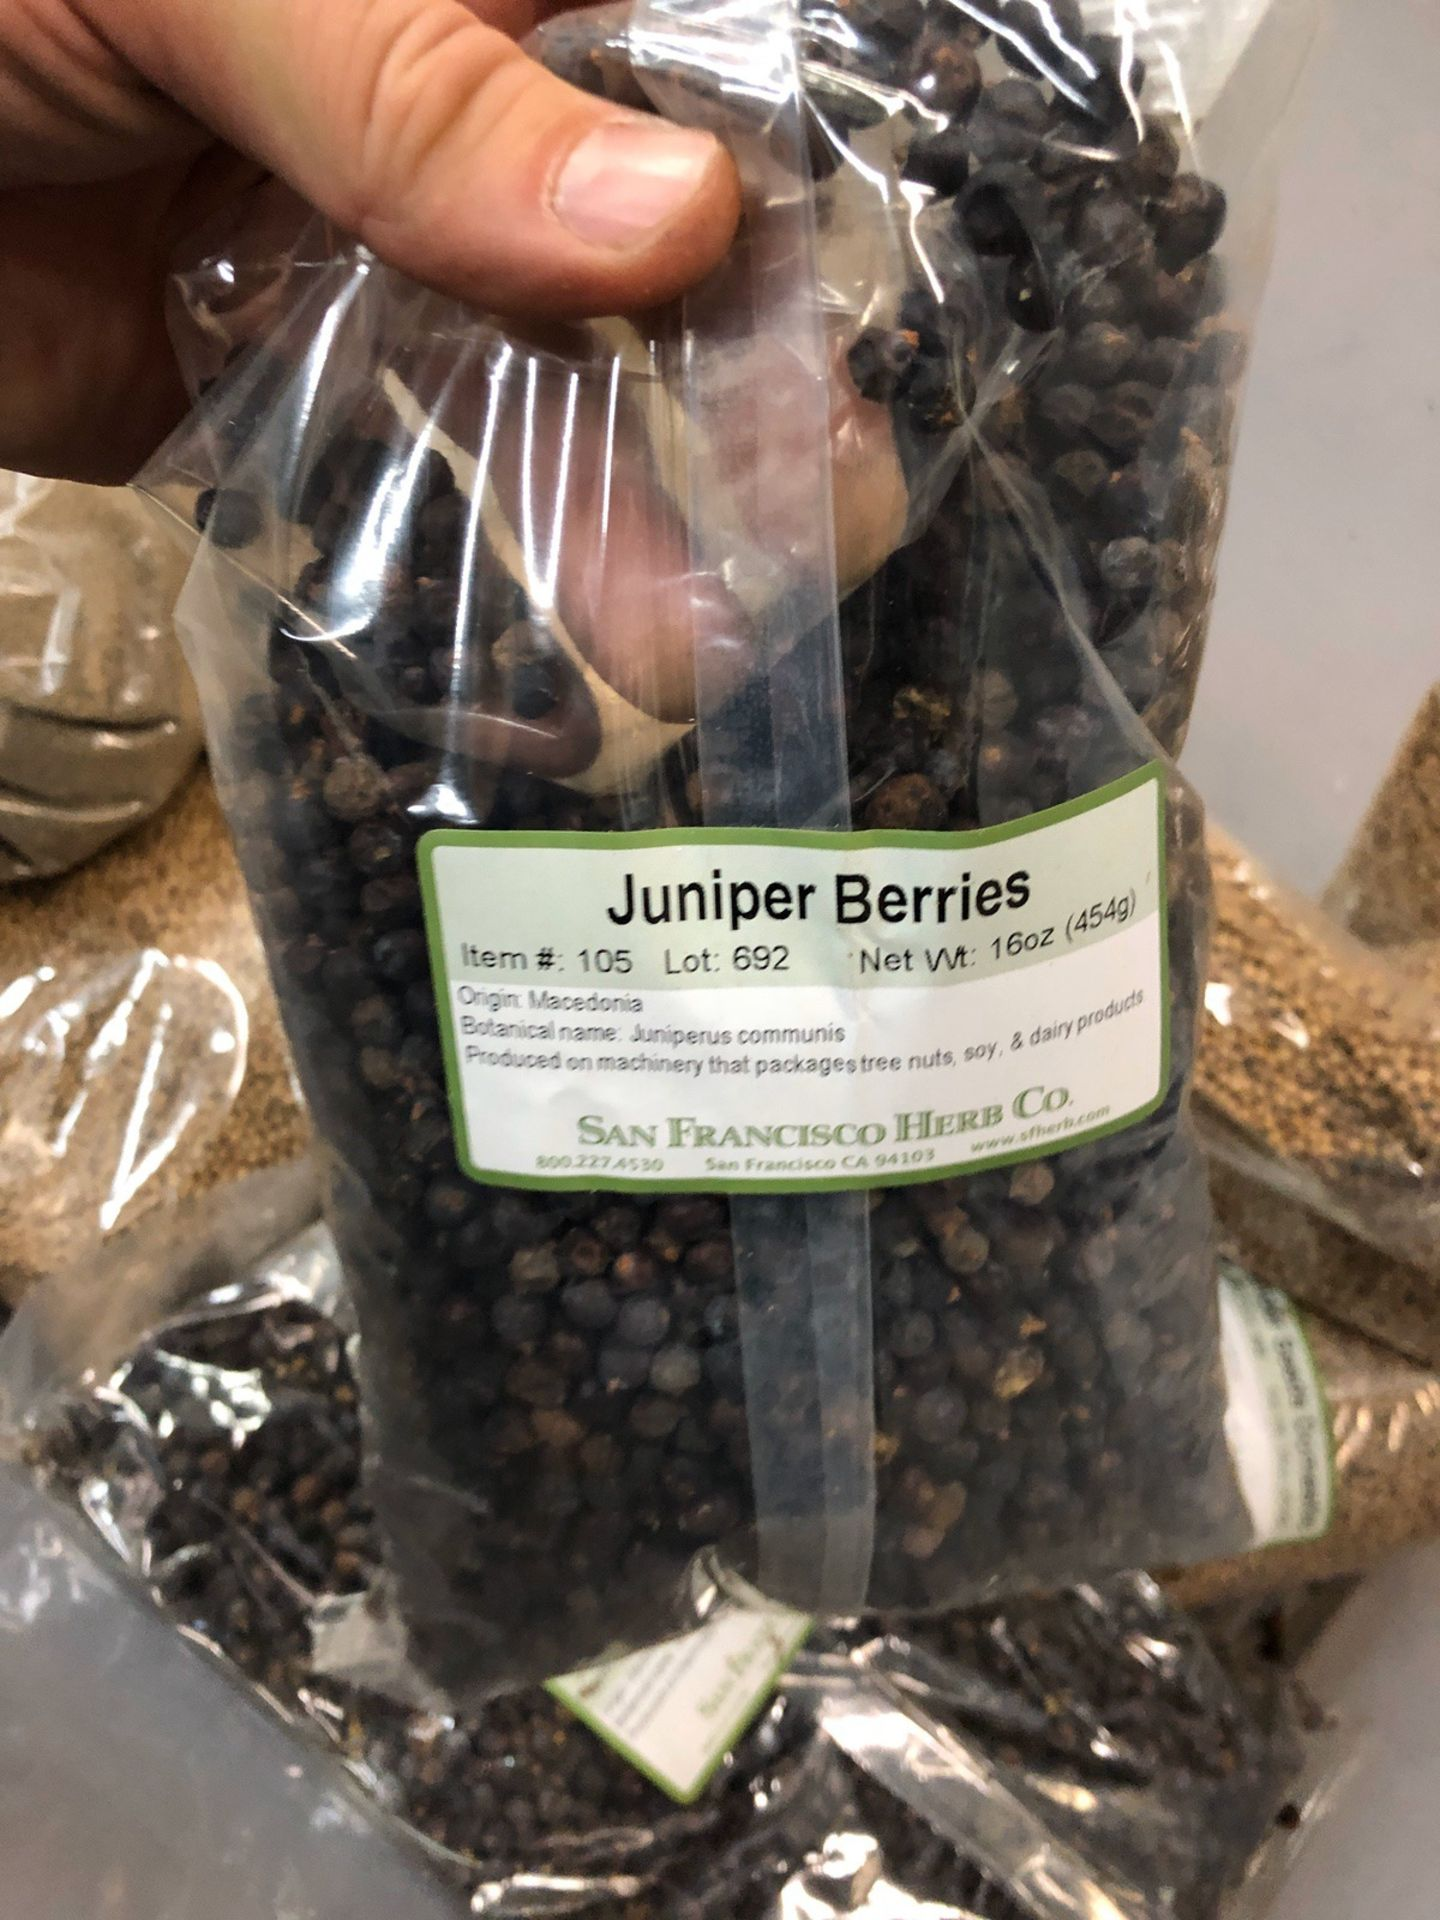 Lot 113 - Lot of Herbs and Botanicals: Basil Leaf, Coriander Seed, Citrus Reticulata Peel   Rig Fee: $20 or HC